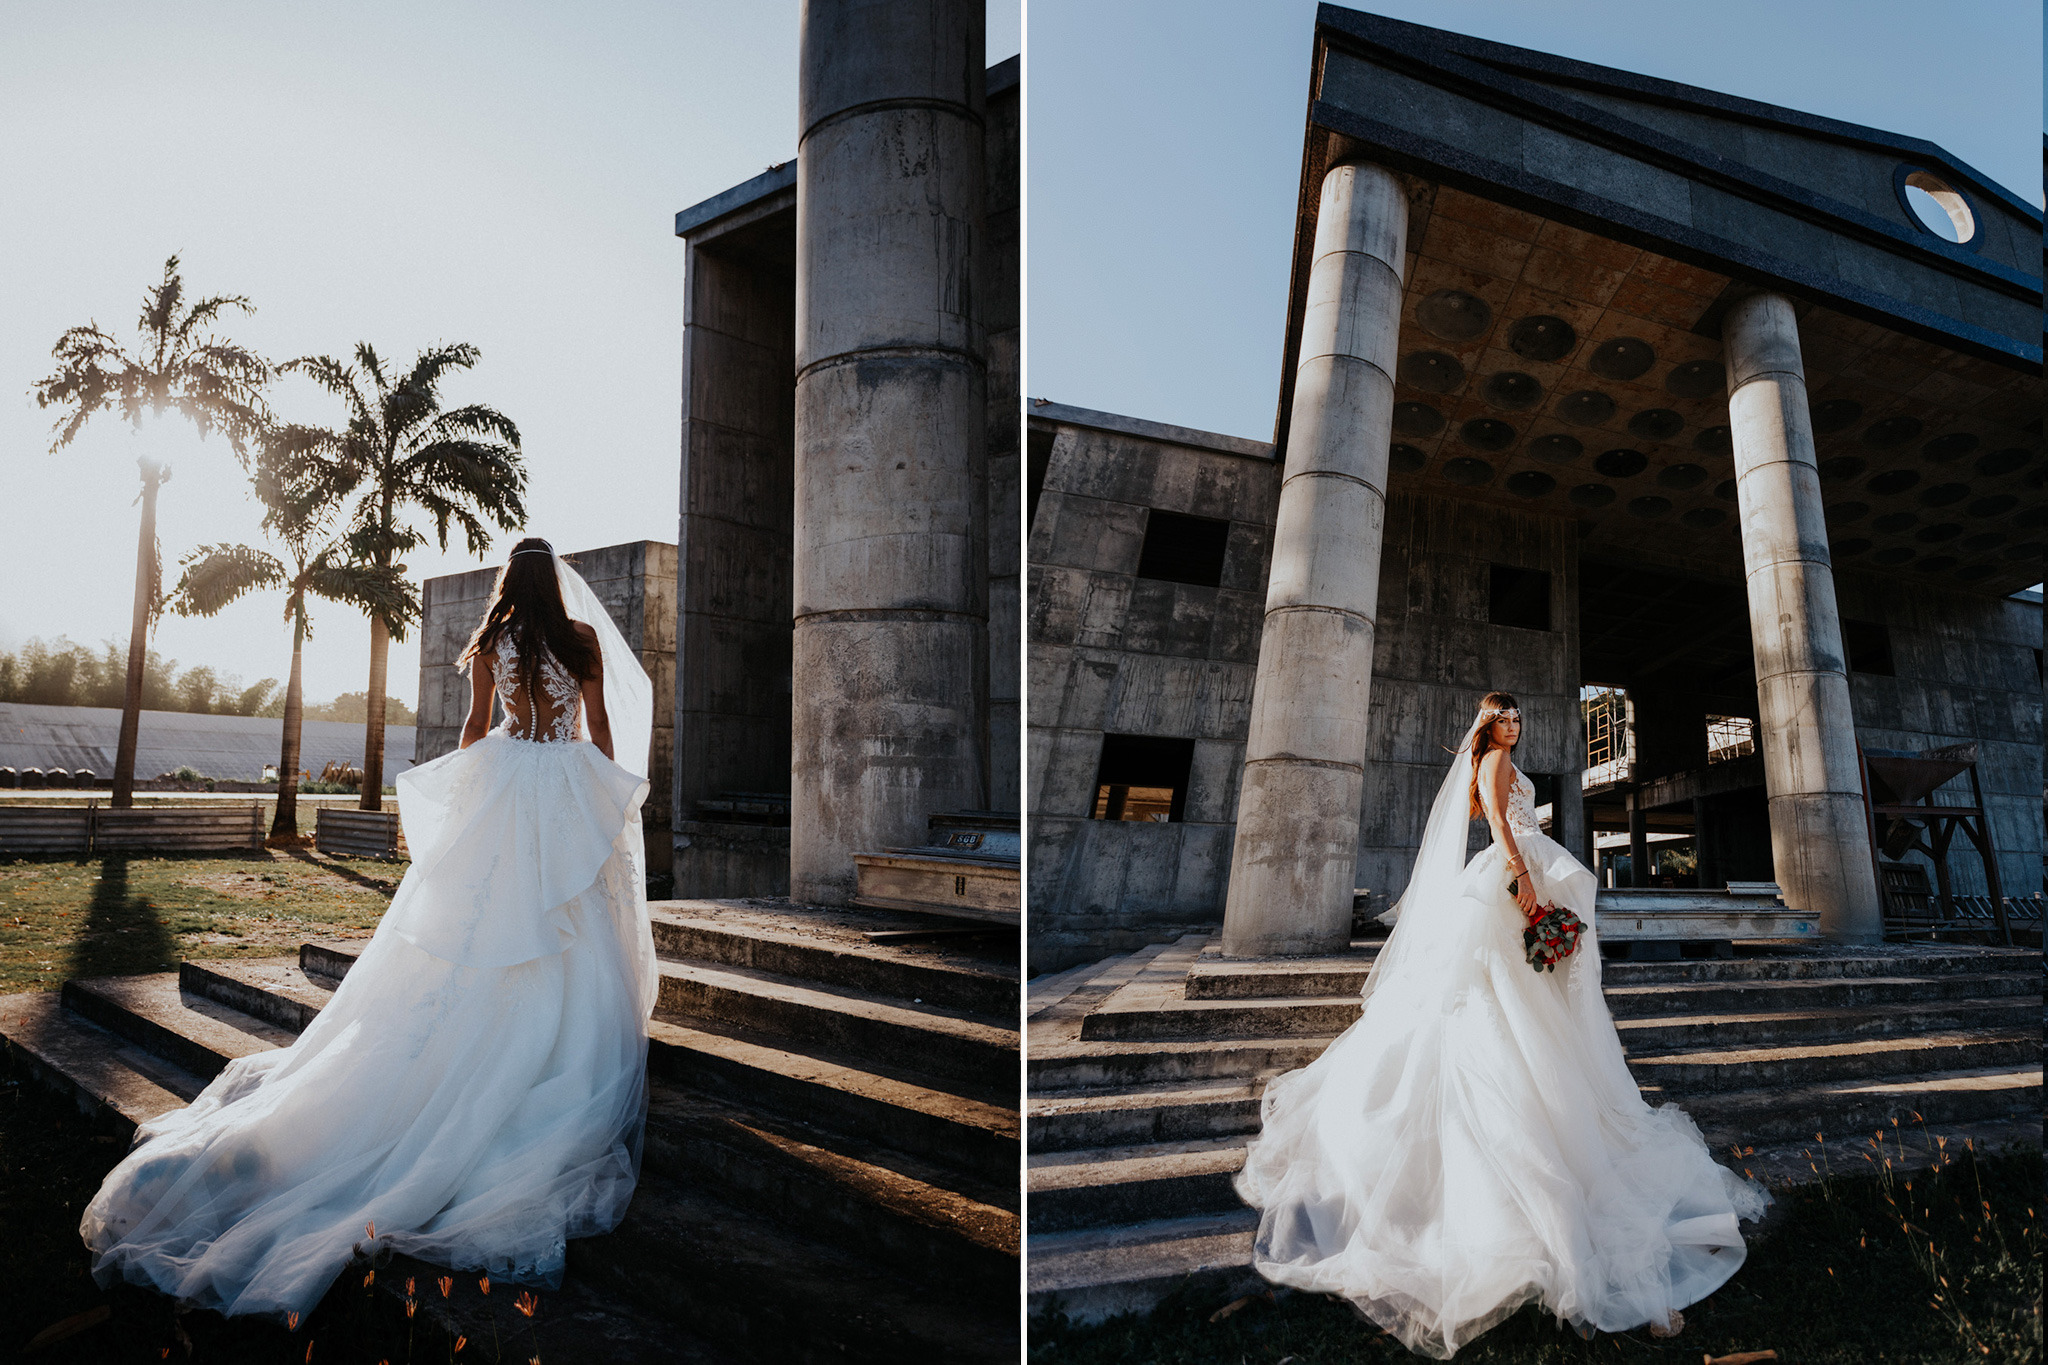 Natasha + Kaz - {Drew Manor} wedding photorgraphy in Trinidad and Tobago